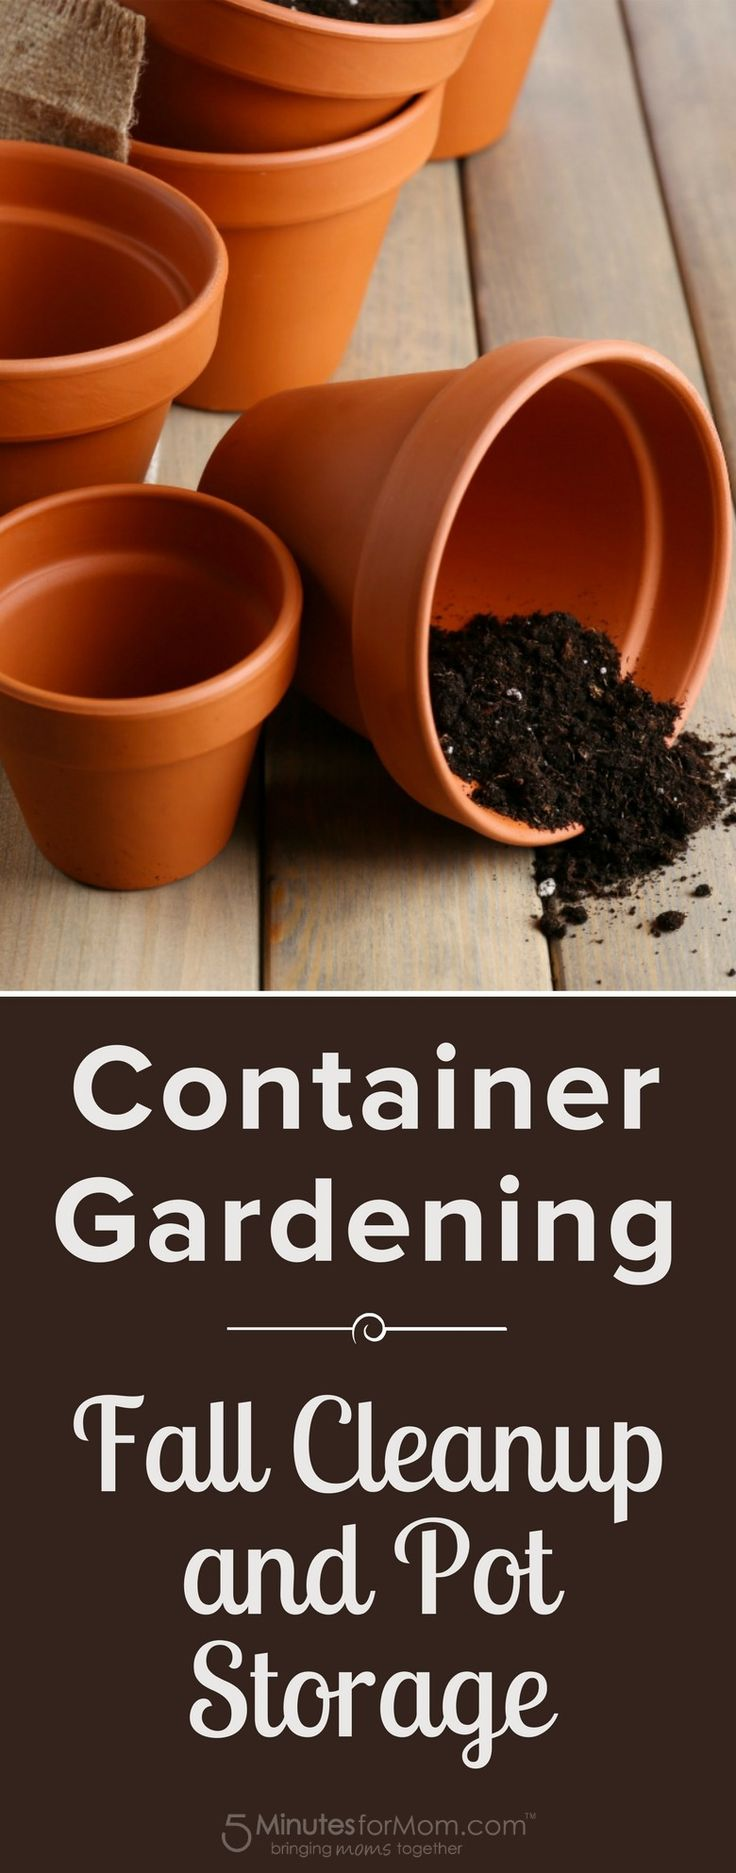 Container Gardening - Fall Cleanup and Pot Storage